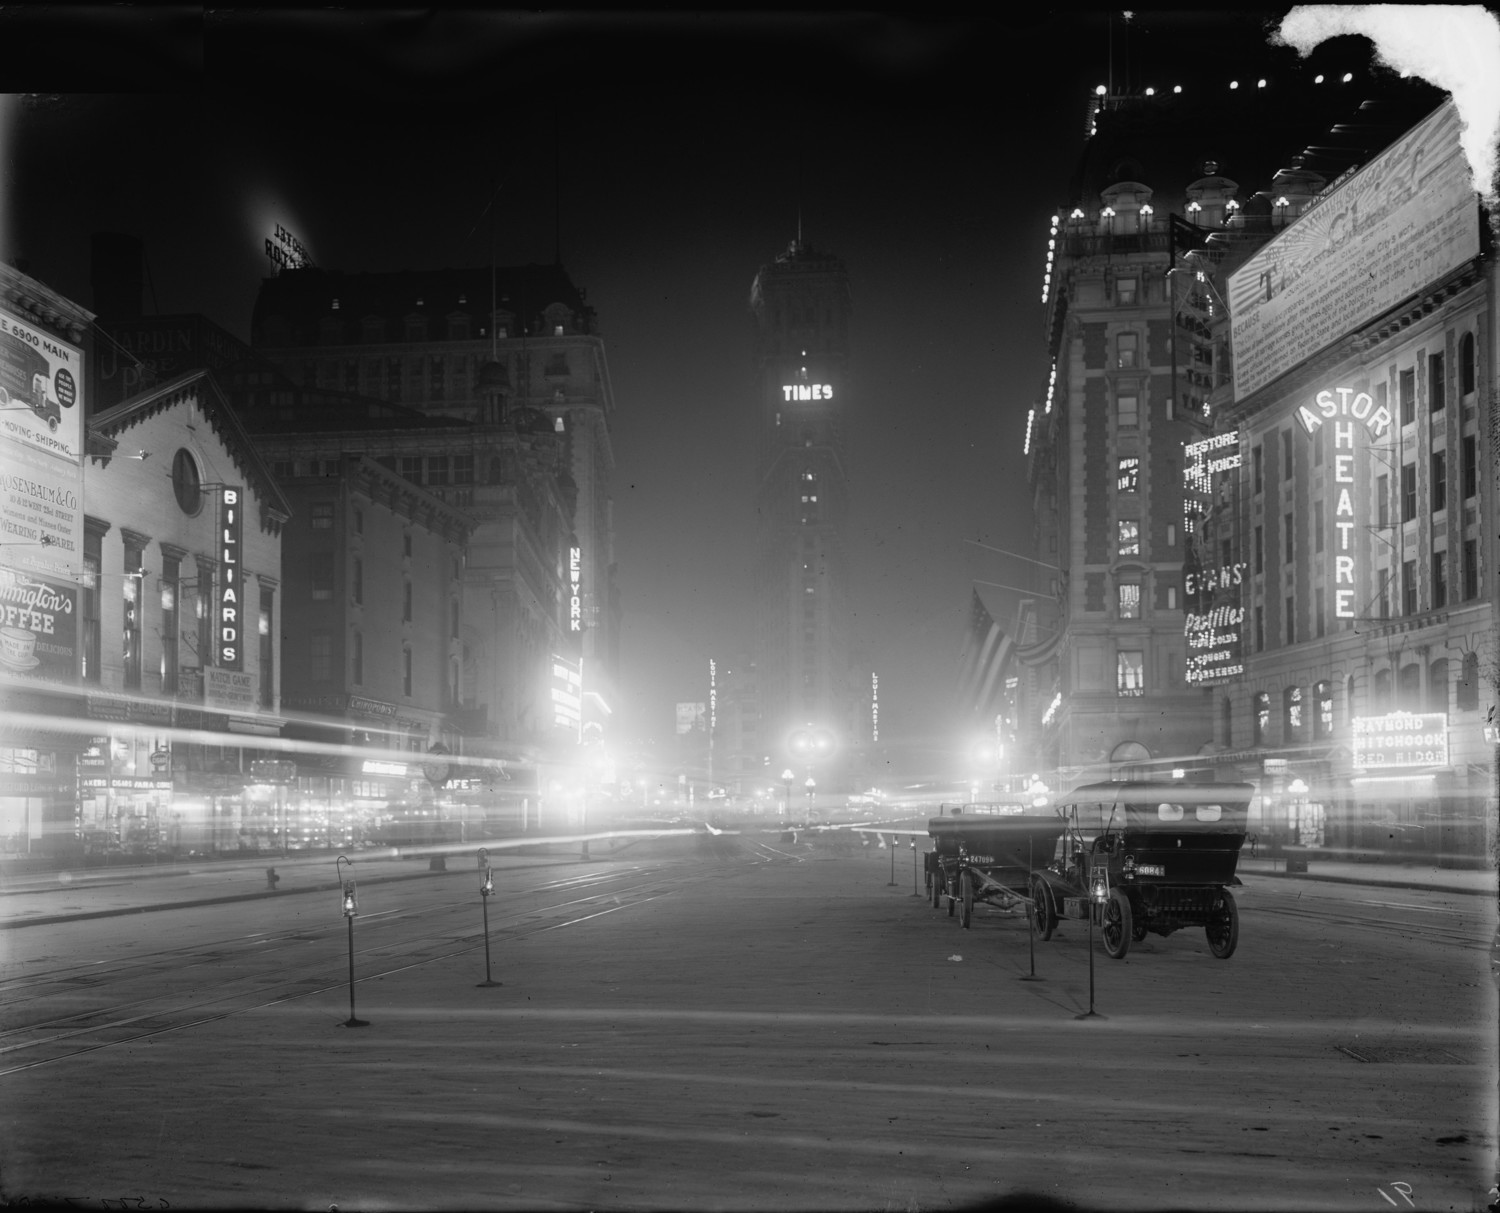 Times Square at night 1911